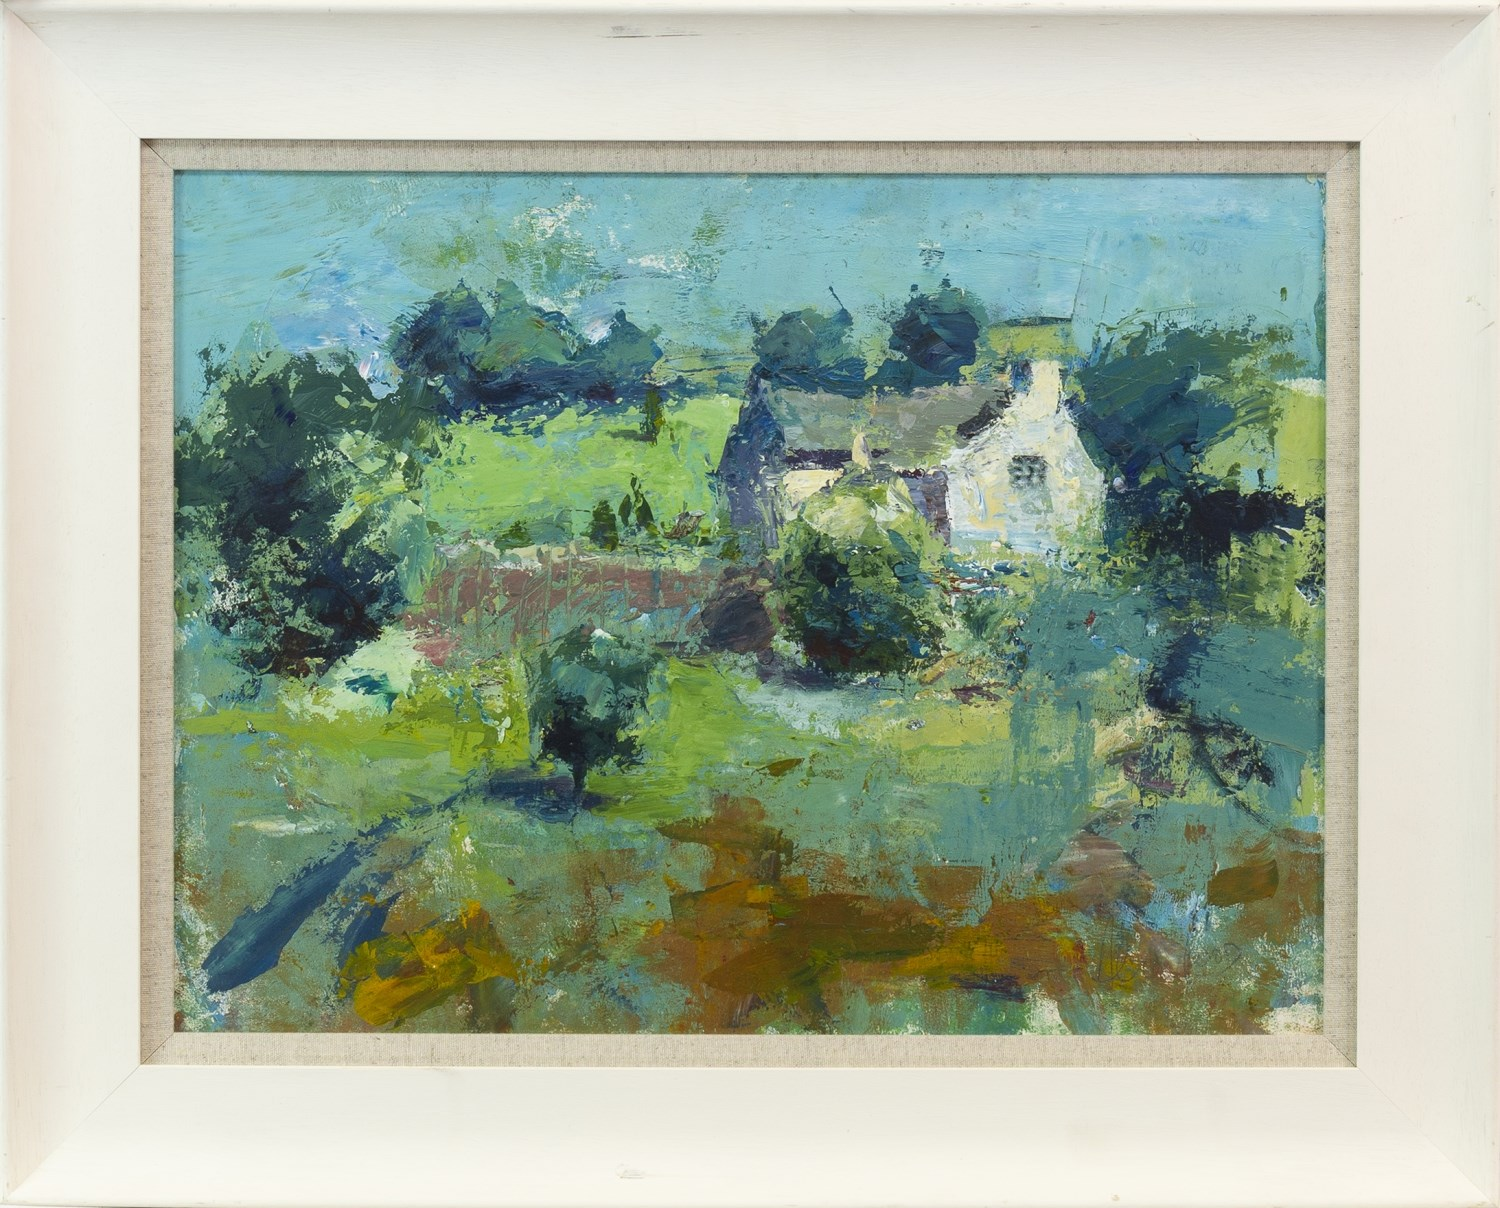 Lot 59 - SUMMER COTTAGE, AN OIL ON BOARD BY ANDREW HOOD